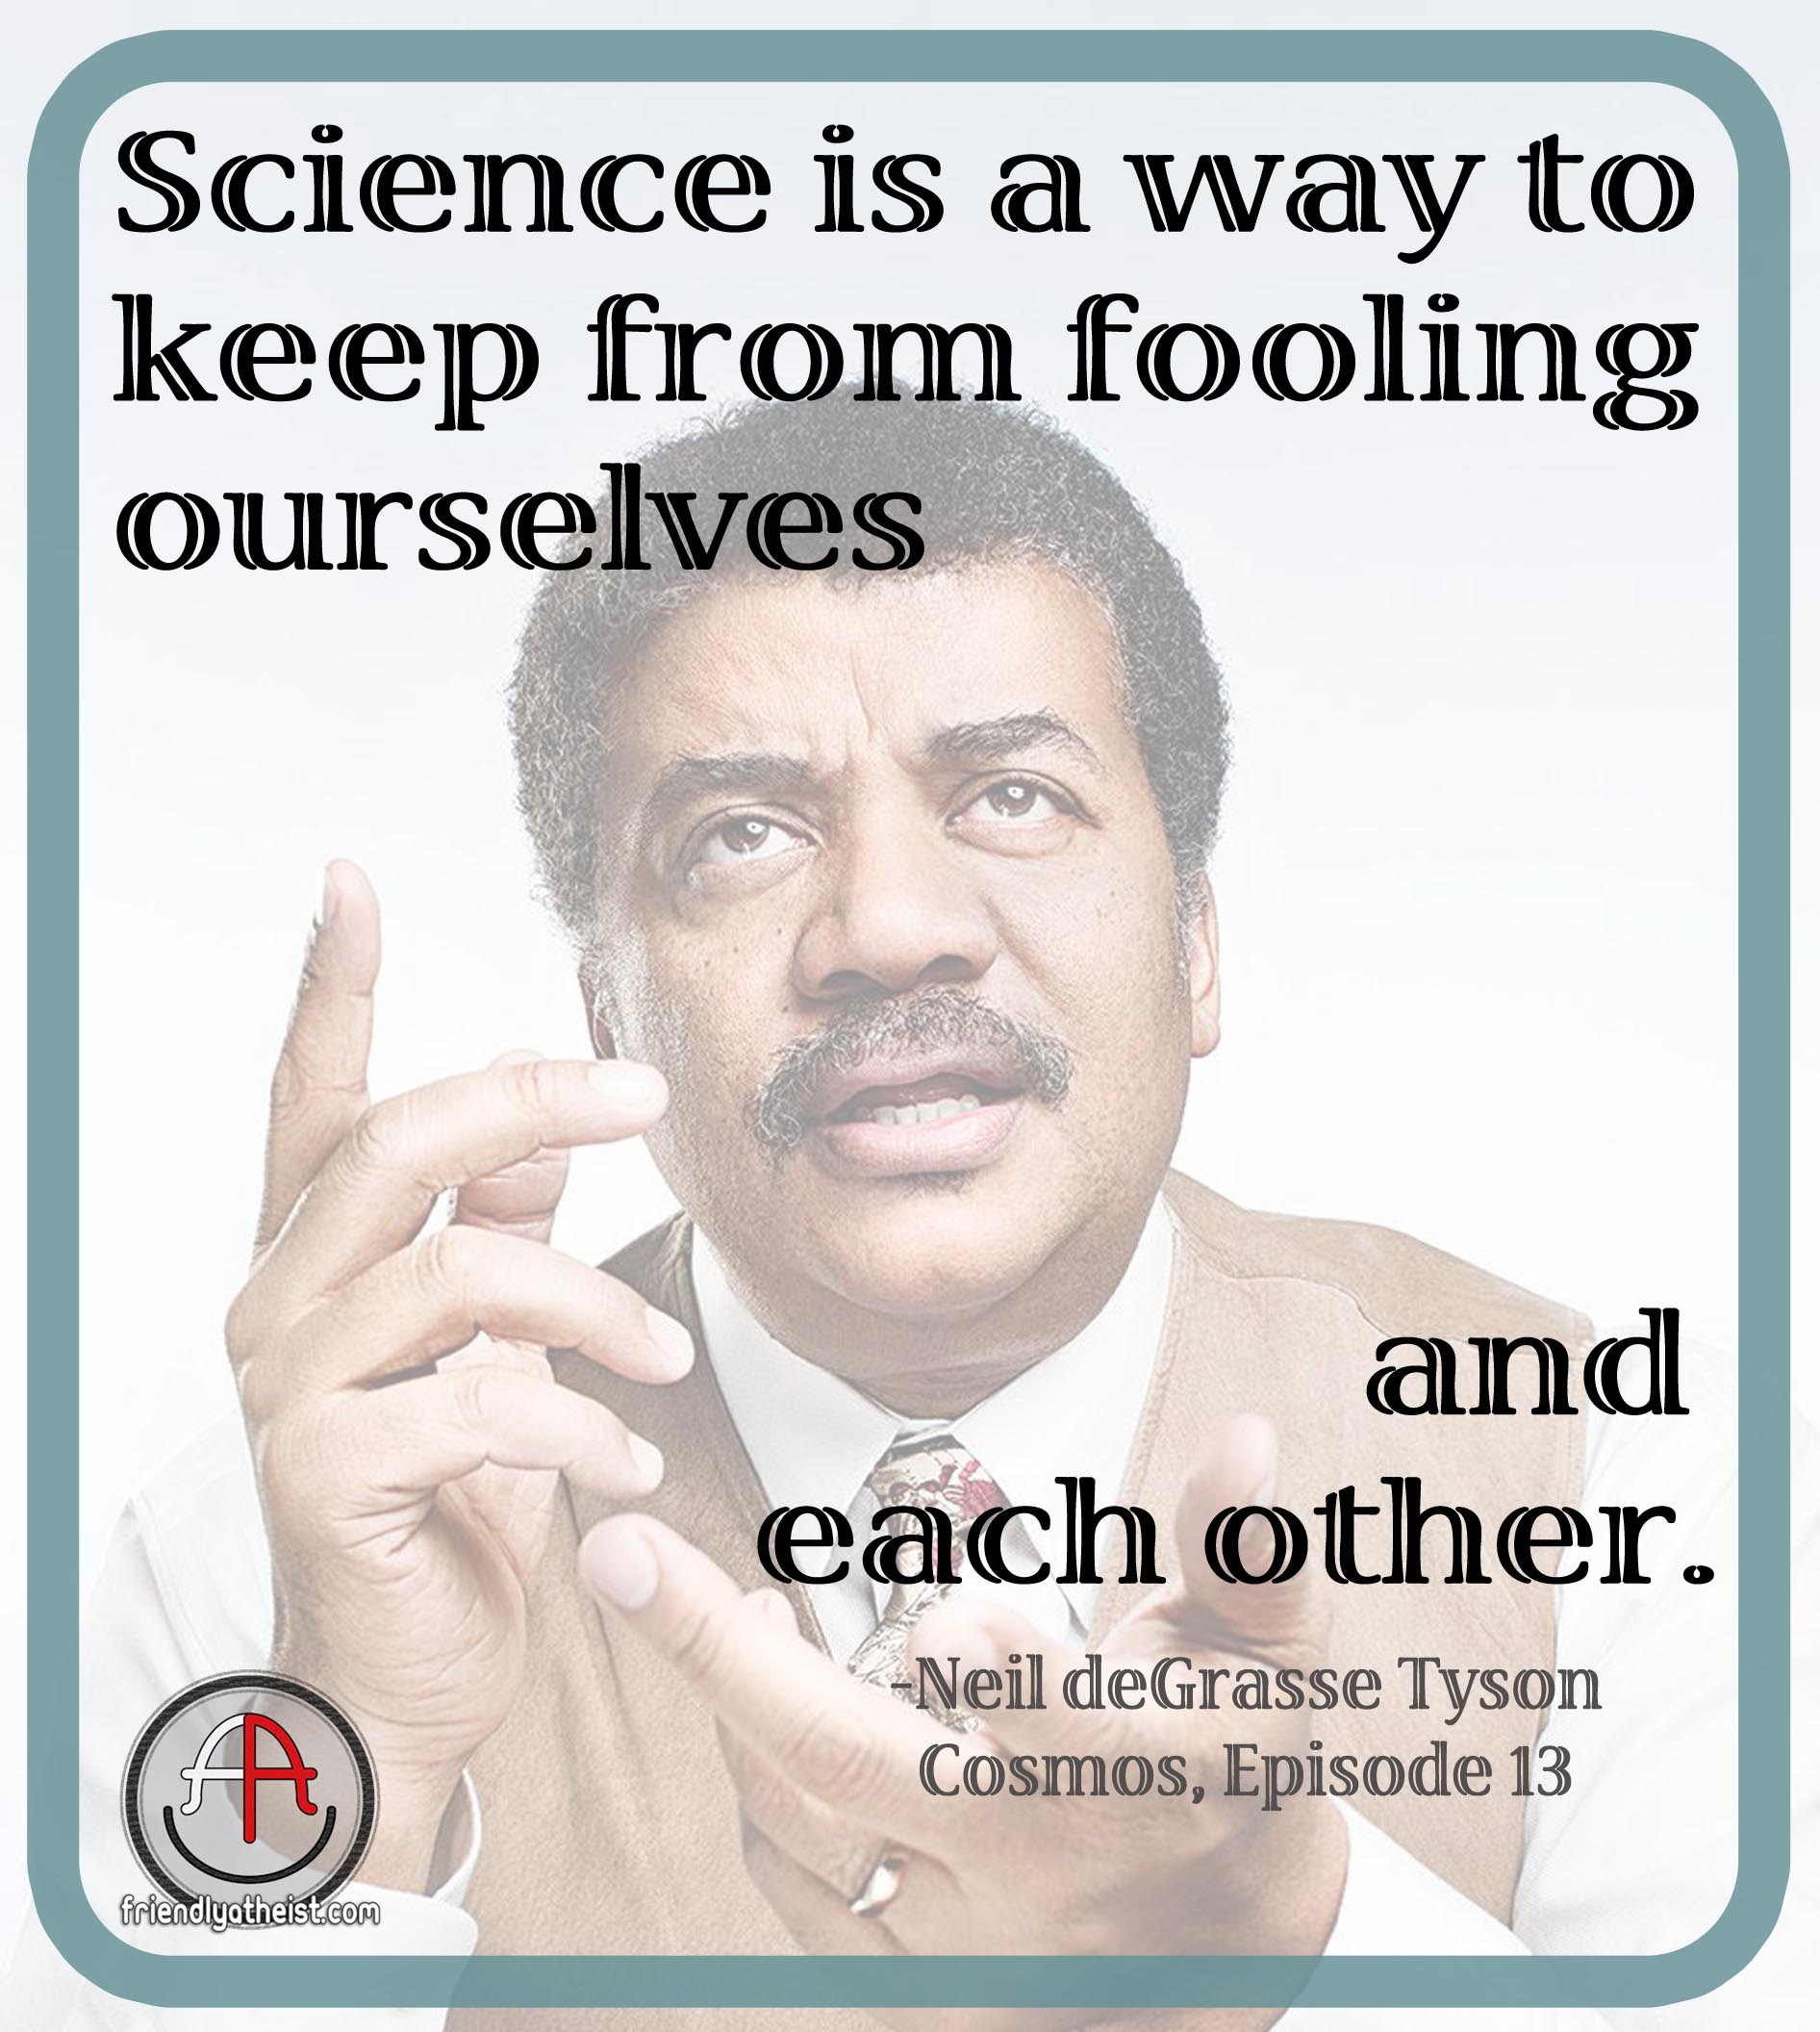 Science is a way to keep from fooling ourselves... and each other